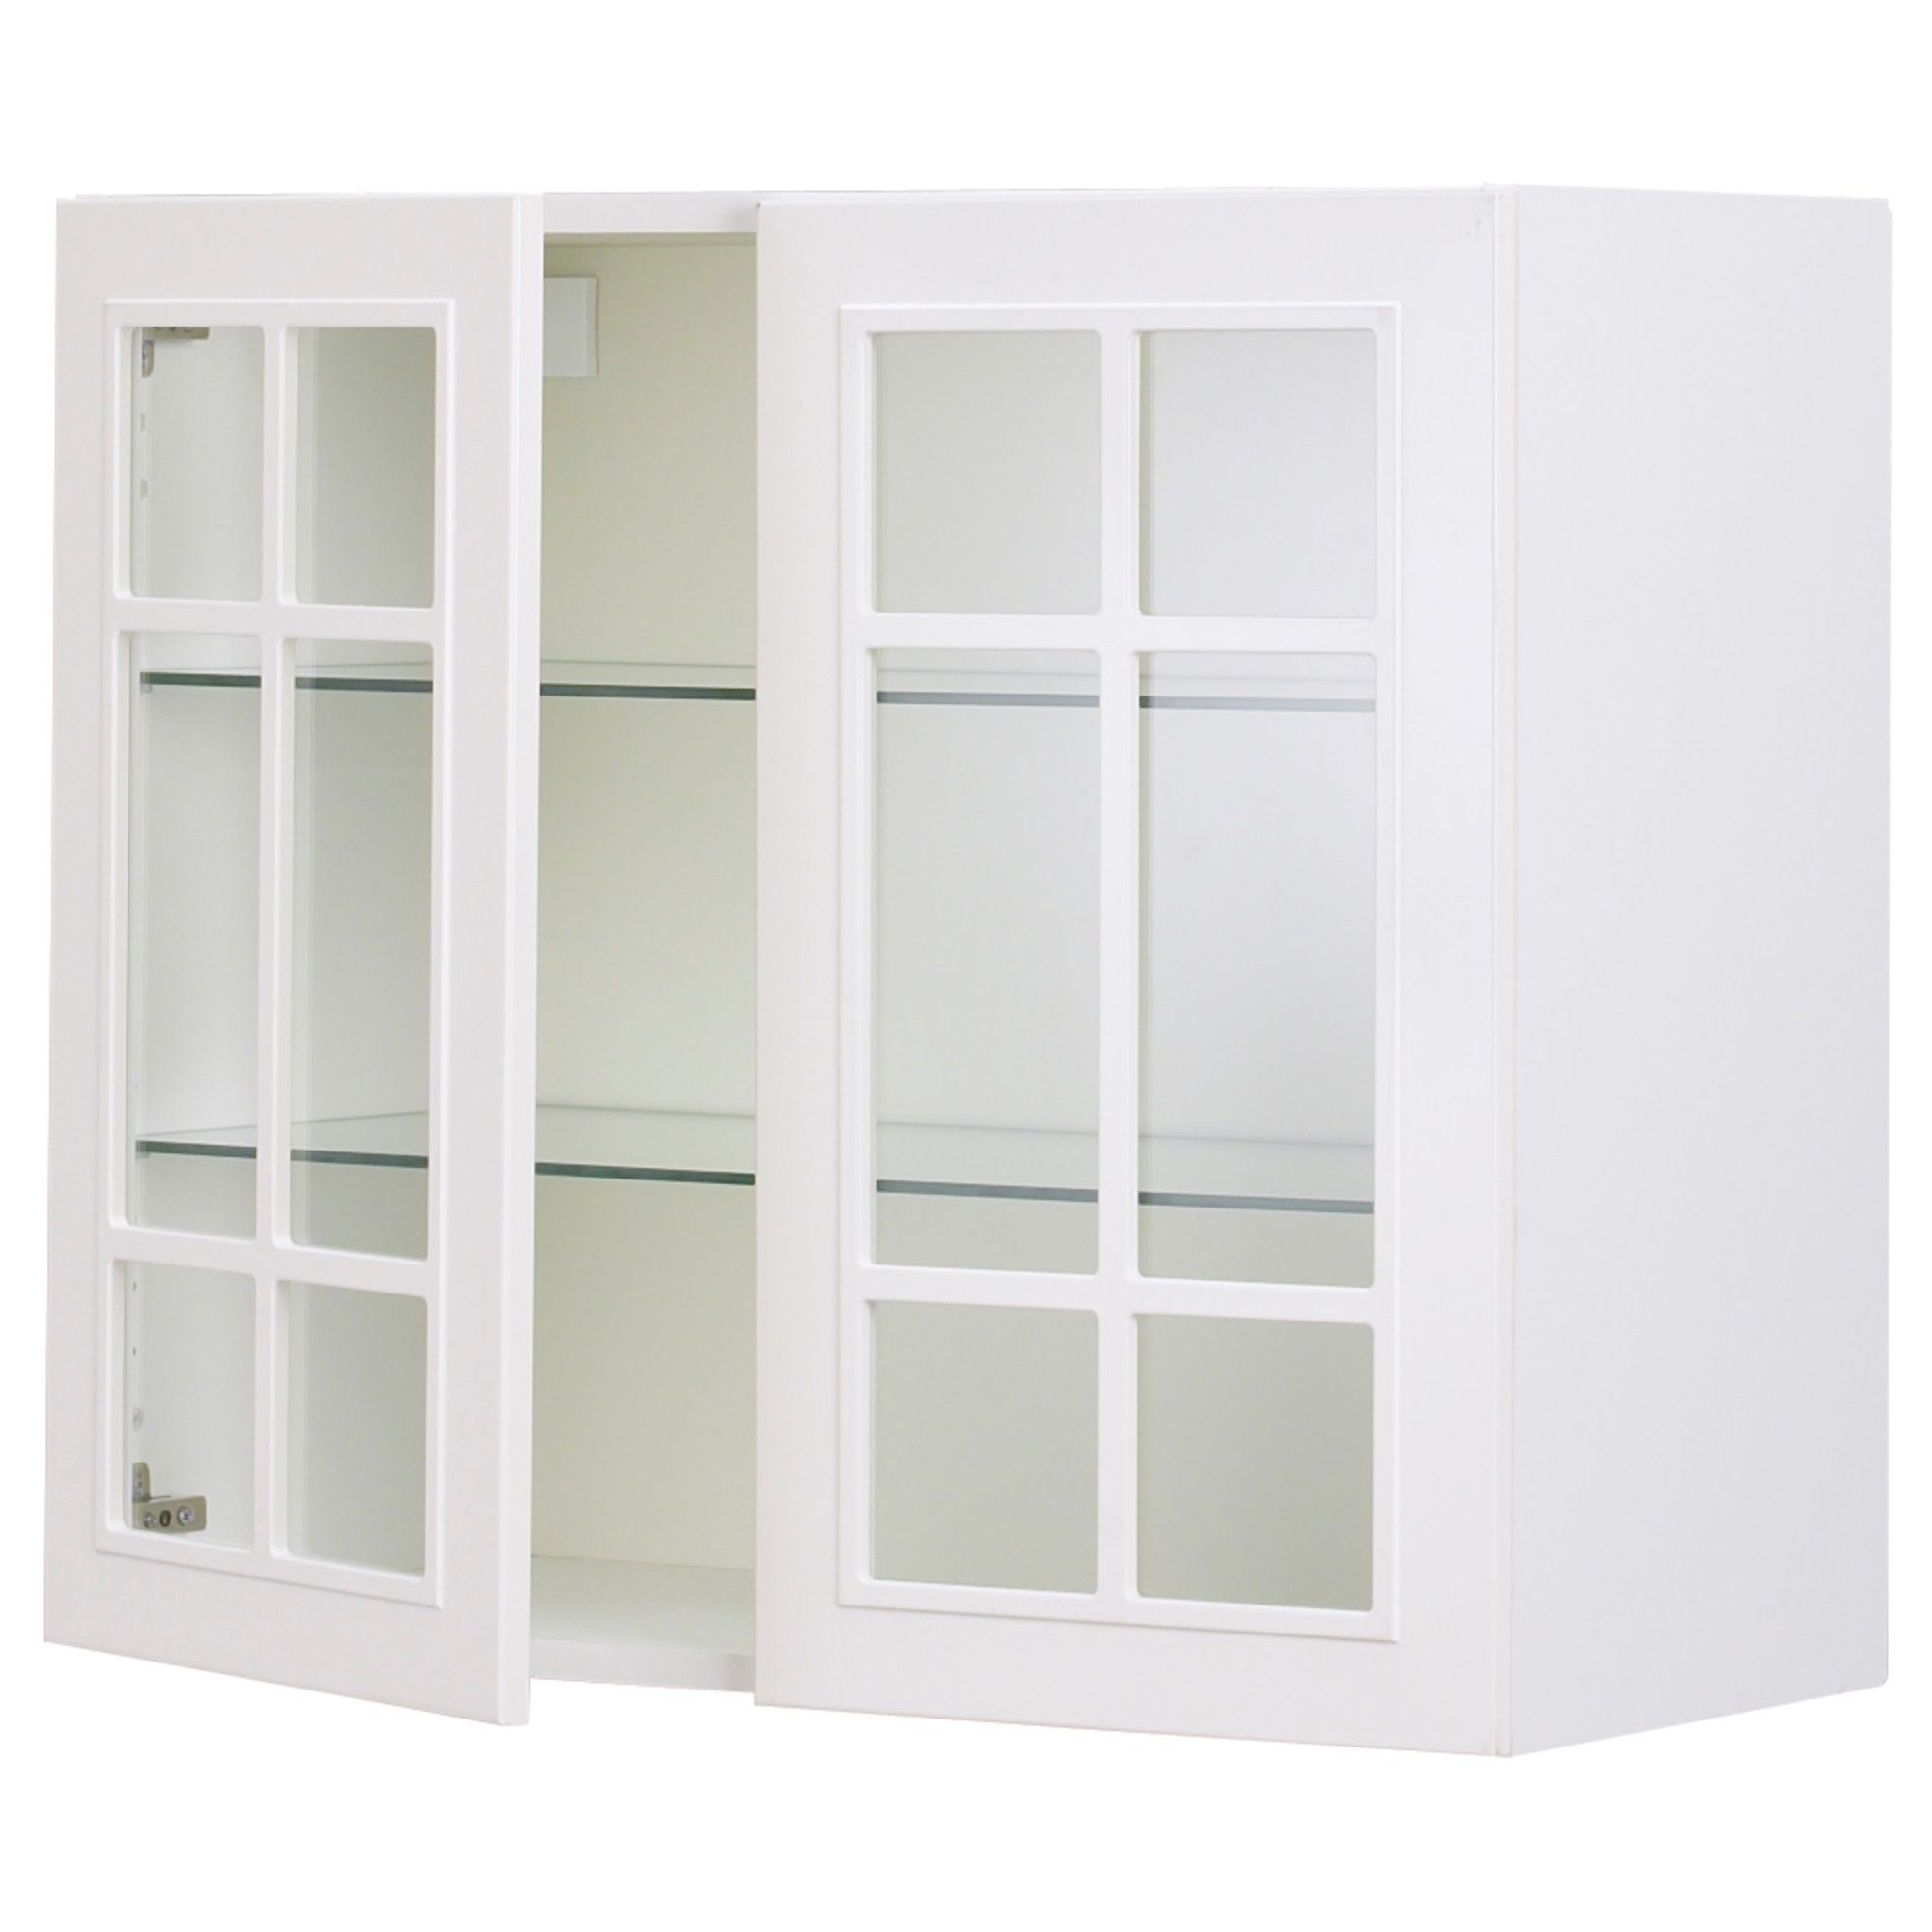 215 30 x 30 glass front wall cabinet akurum wall On glass kitchen wall units